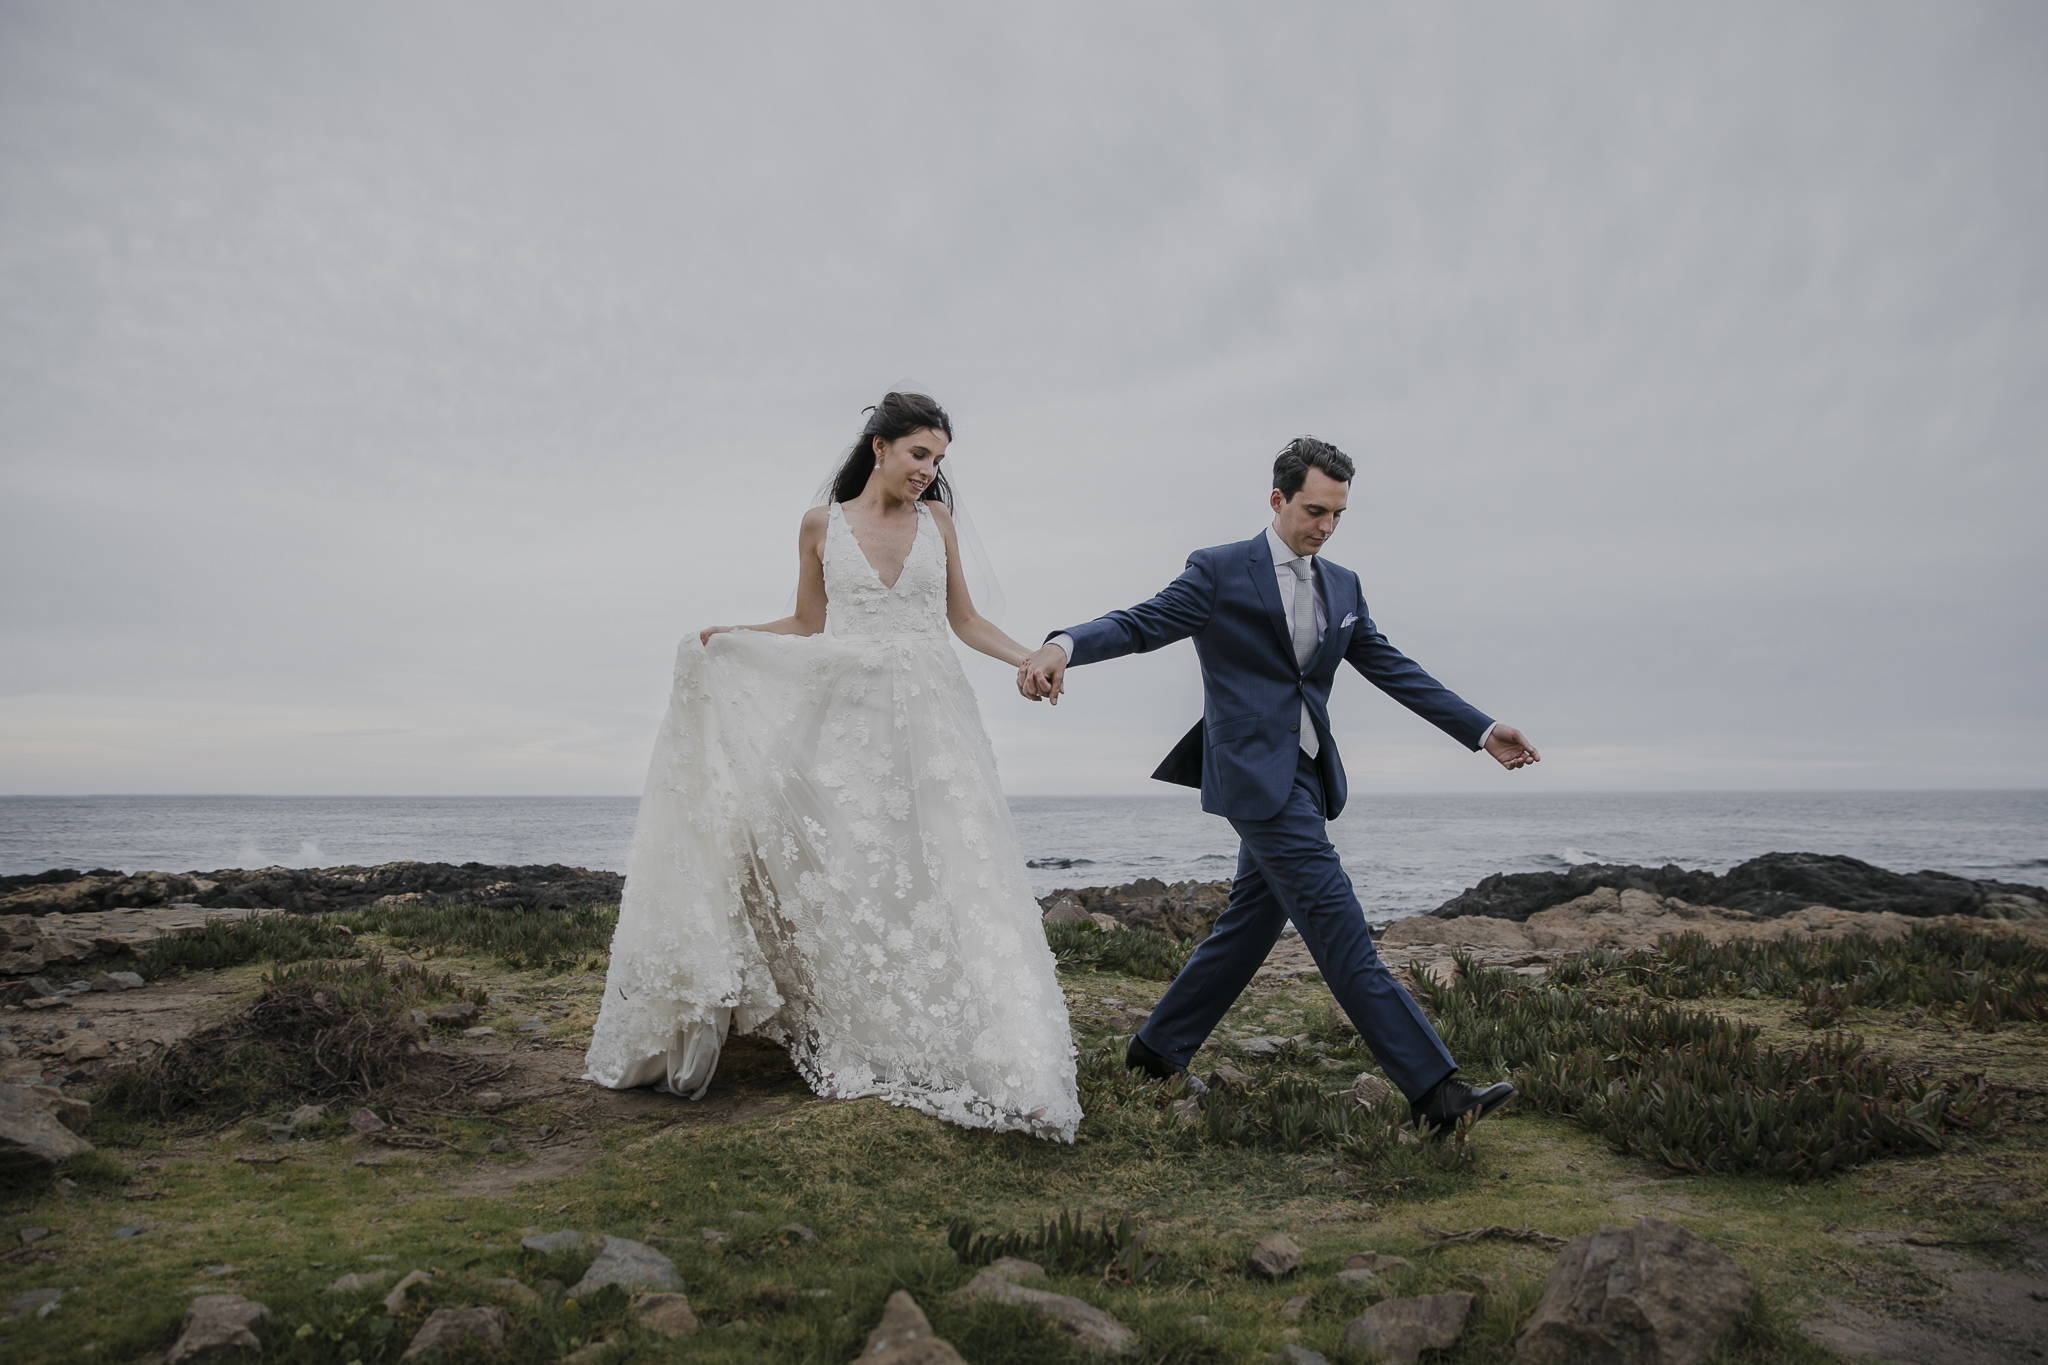 boda punta del este, wedding destination uruguay